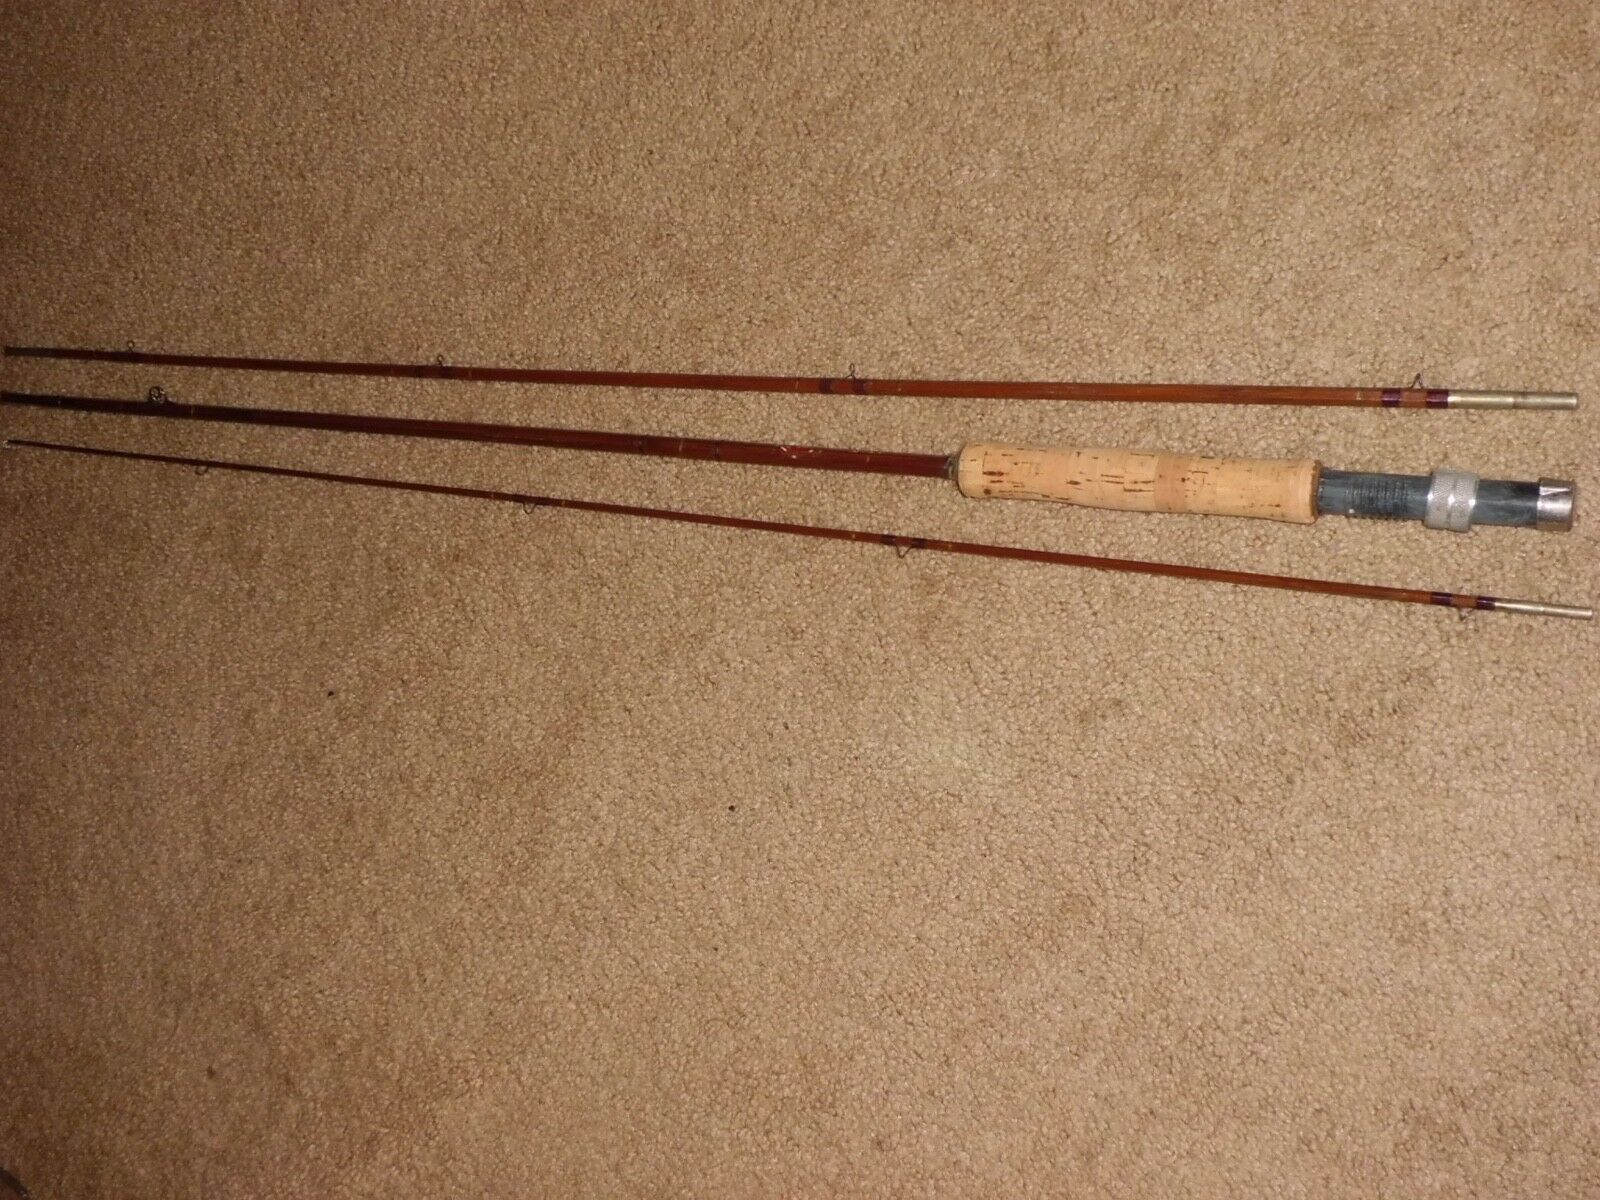 Vintage Sport King M34 Split Bamboo 3pc Fly 9' Rod made in USA